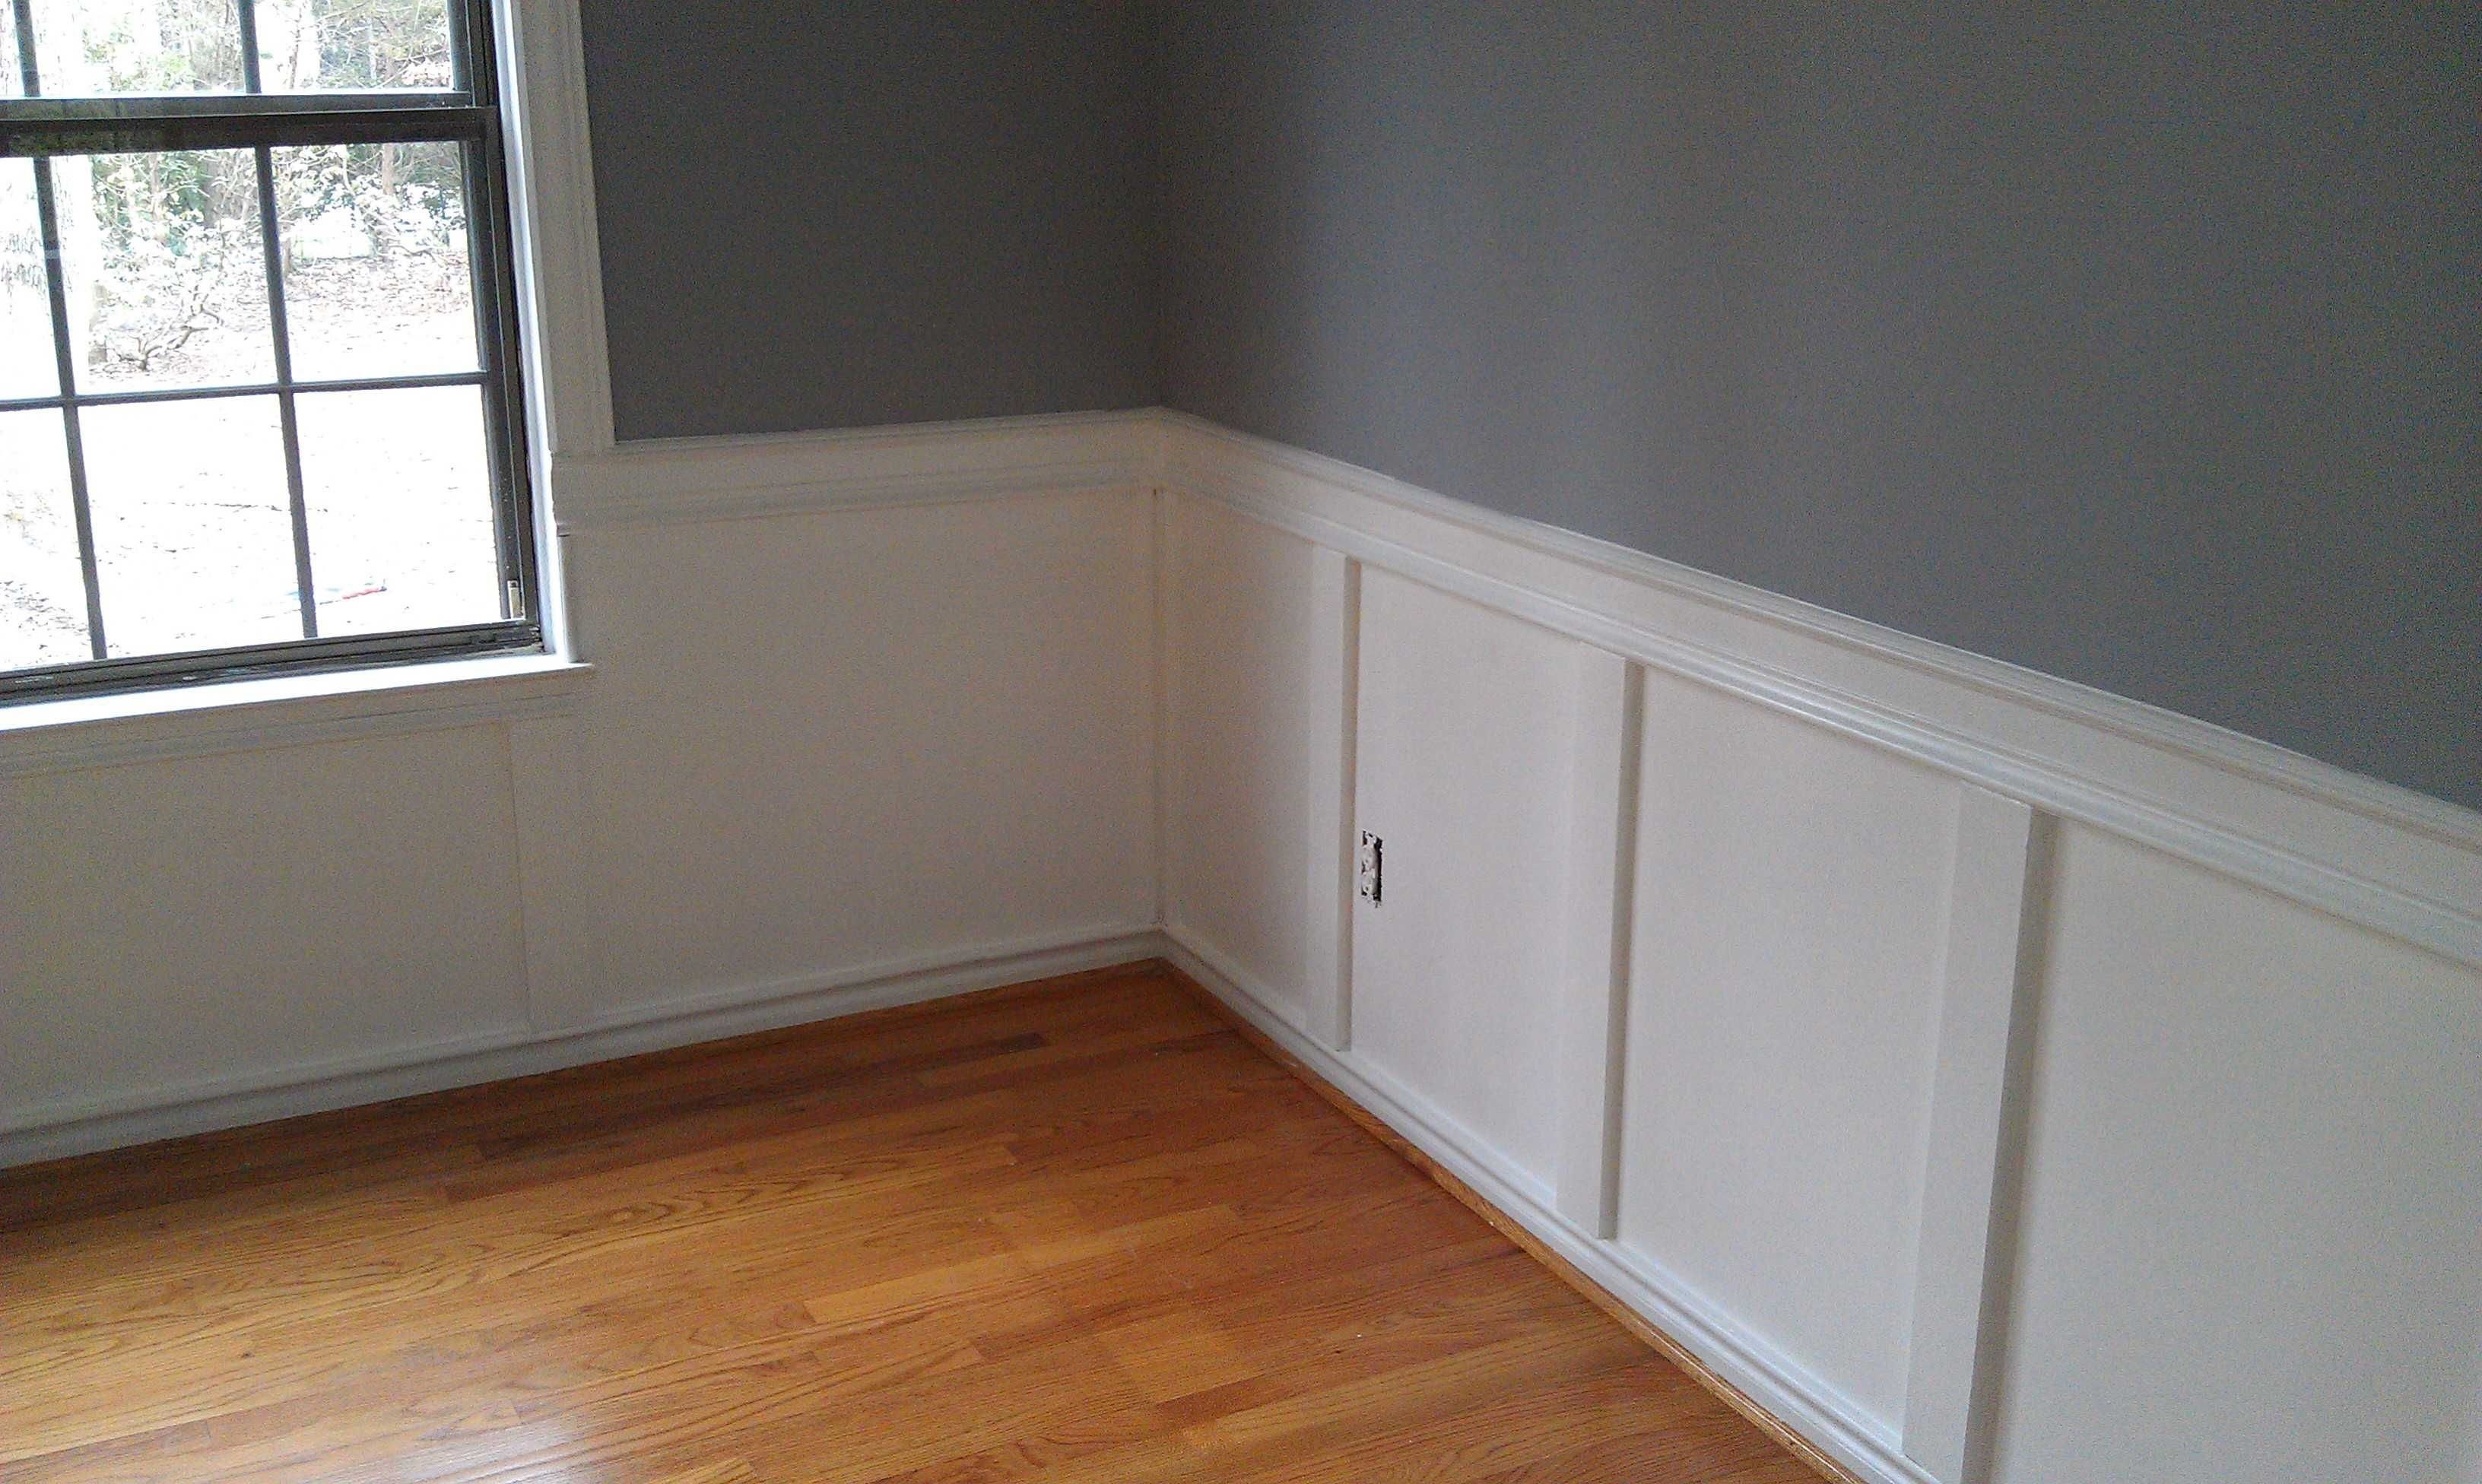 Wainscoting formal dining room - Room Dining Room Wainscoting